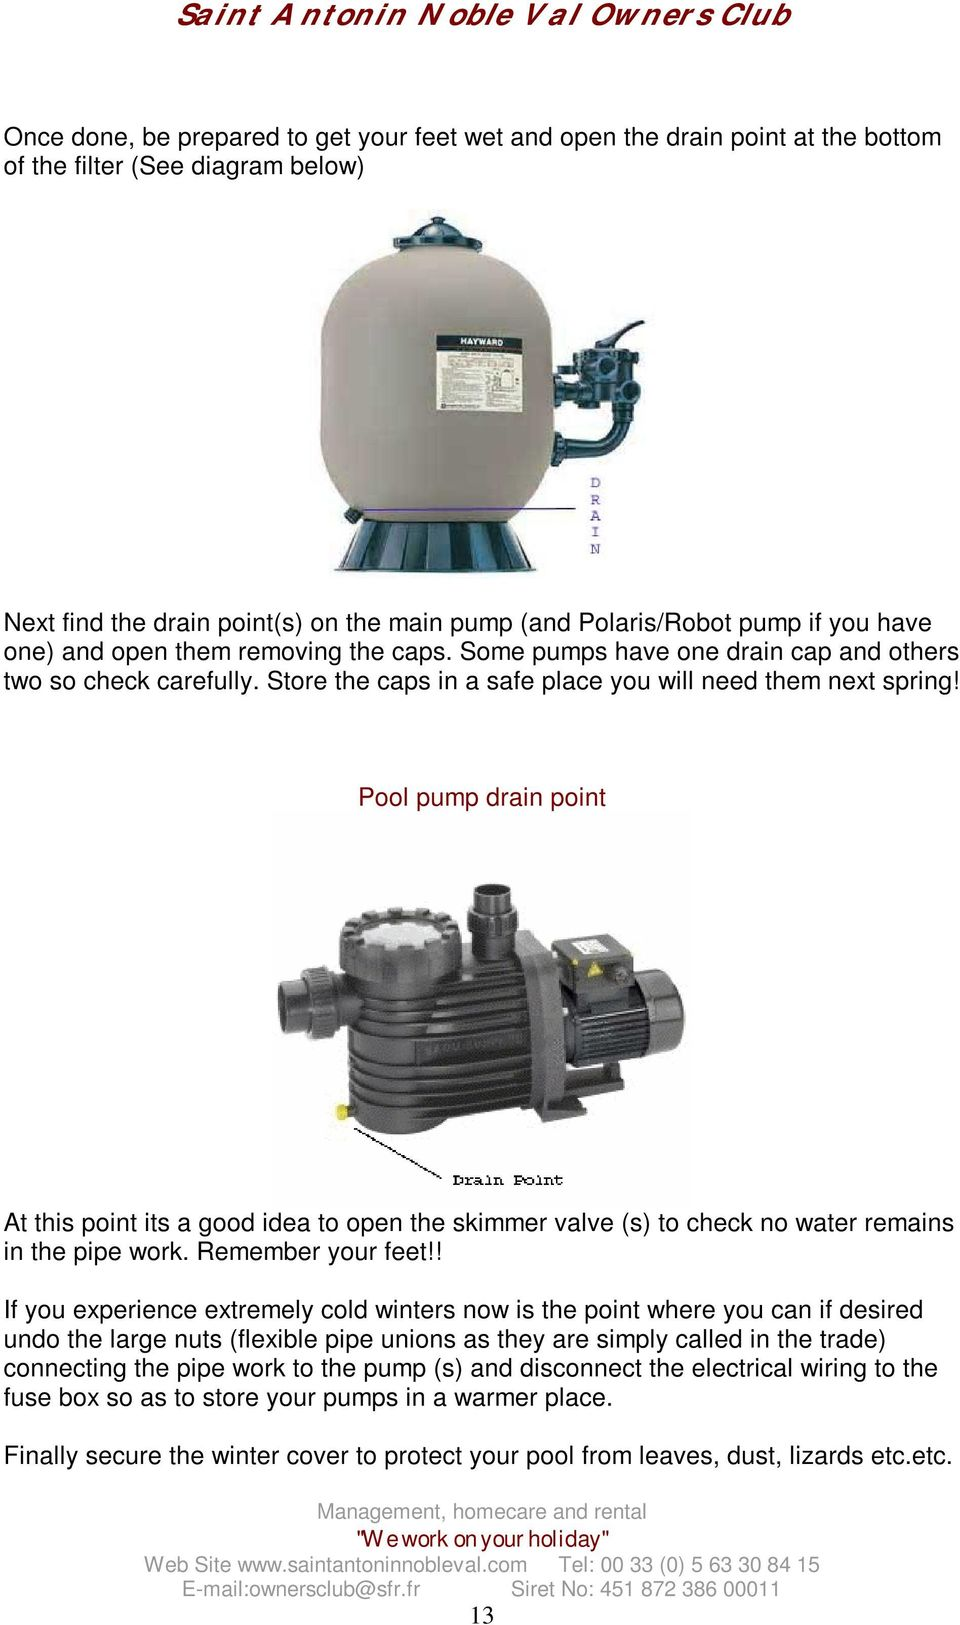 A Guide To Looking After Your Swimming Pool Pdf Fuse Box In Pipe Pump Drain Point At This Its Good Idea Open The Skimmer Valve